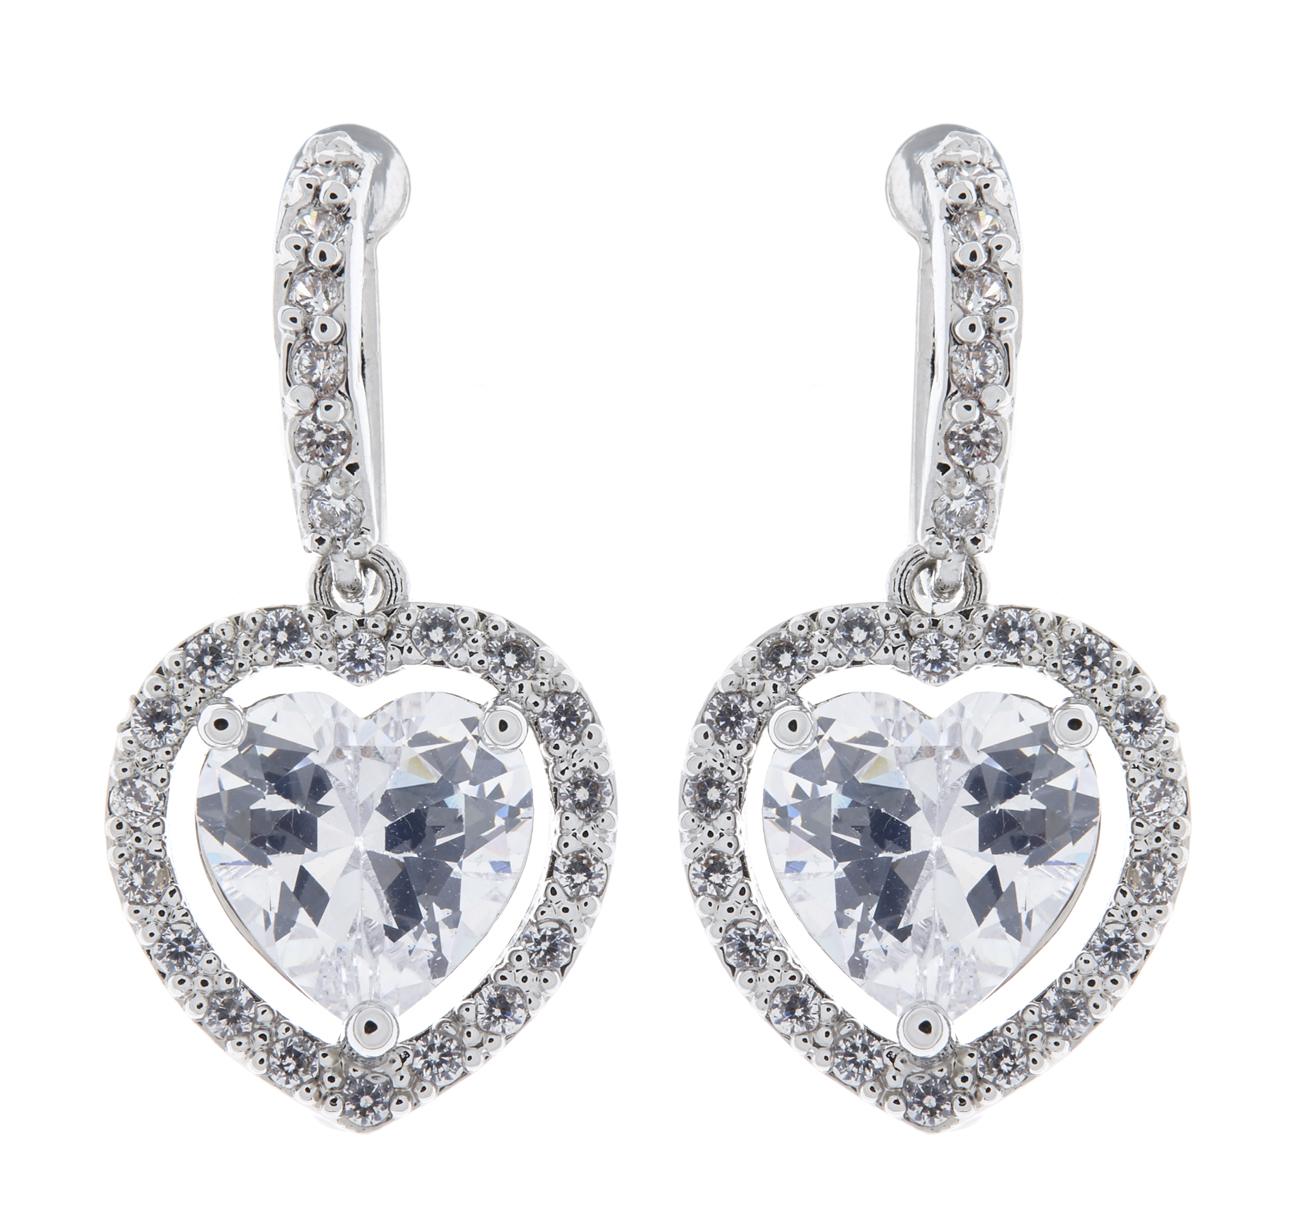 Clip On Earrings - Mel - silver drop earring with cubic zirconia crystals and a heart shaped stone